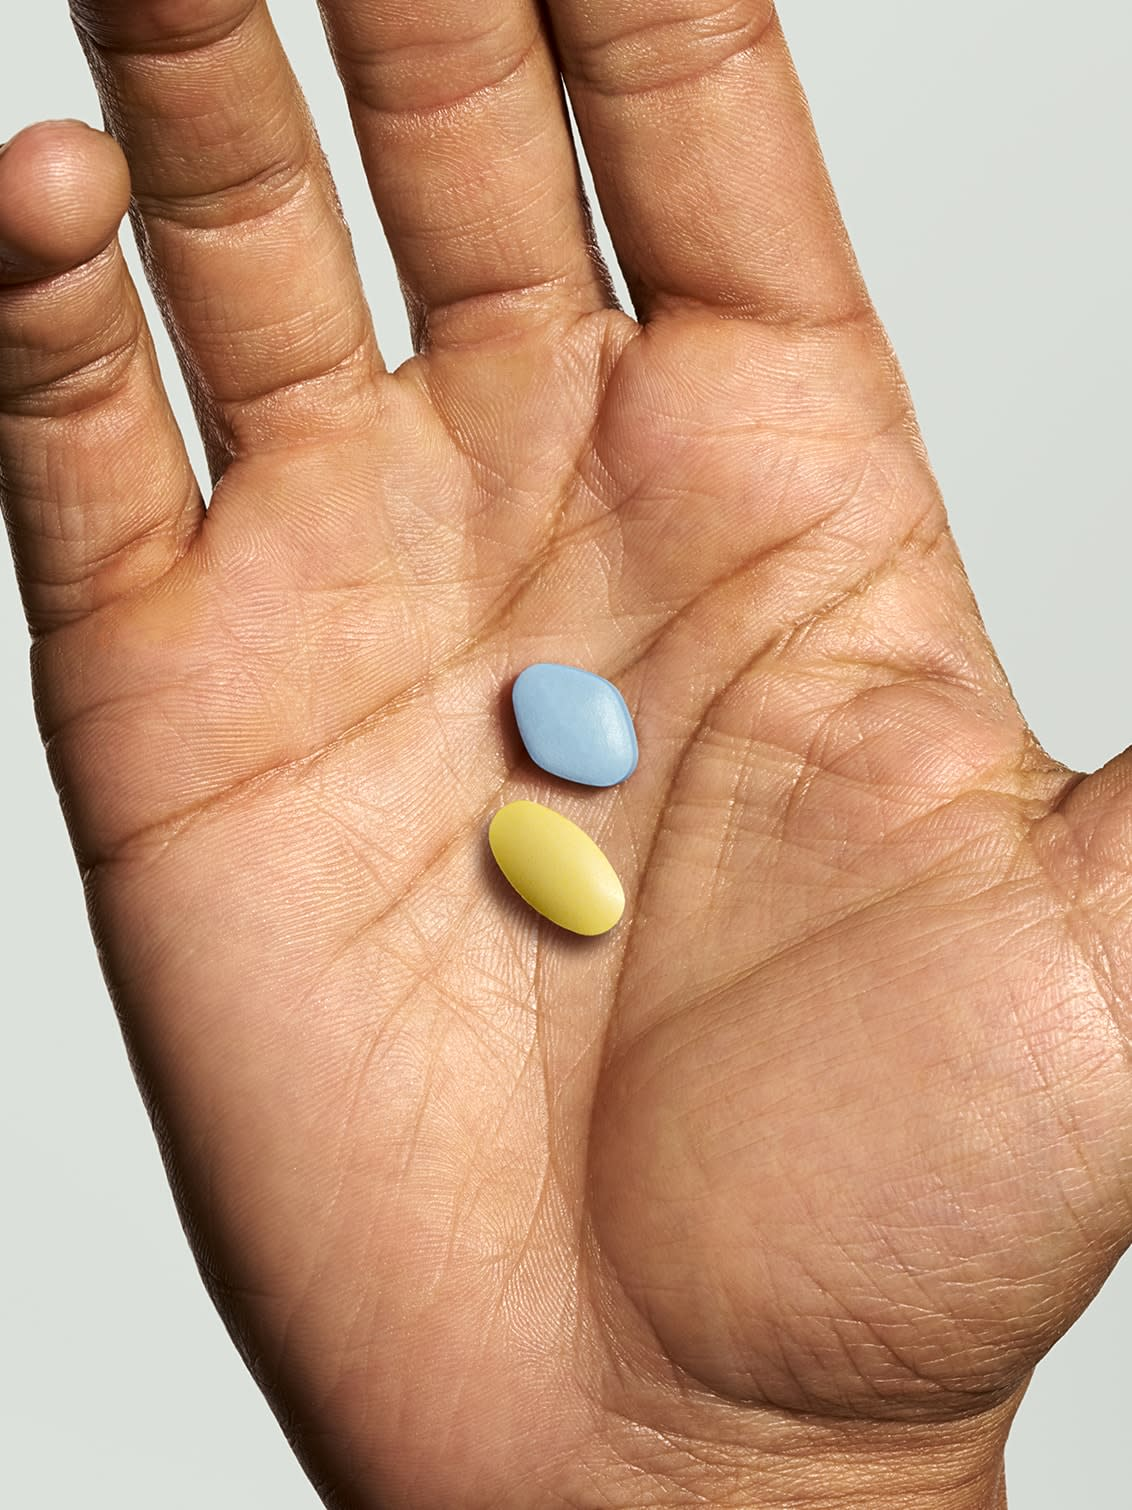 Two pills in someone's hand